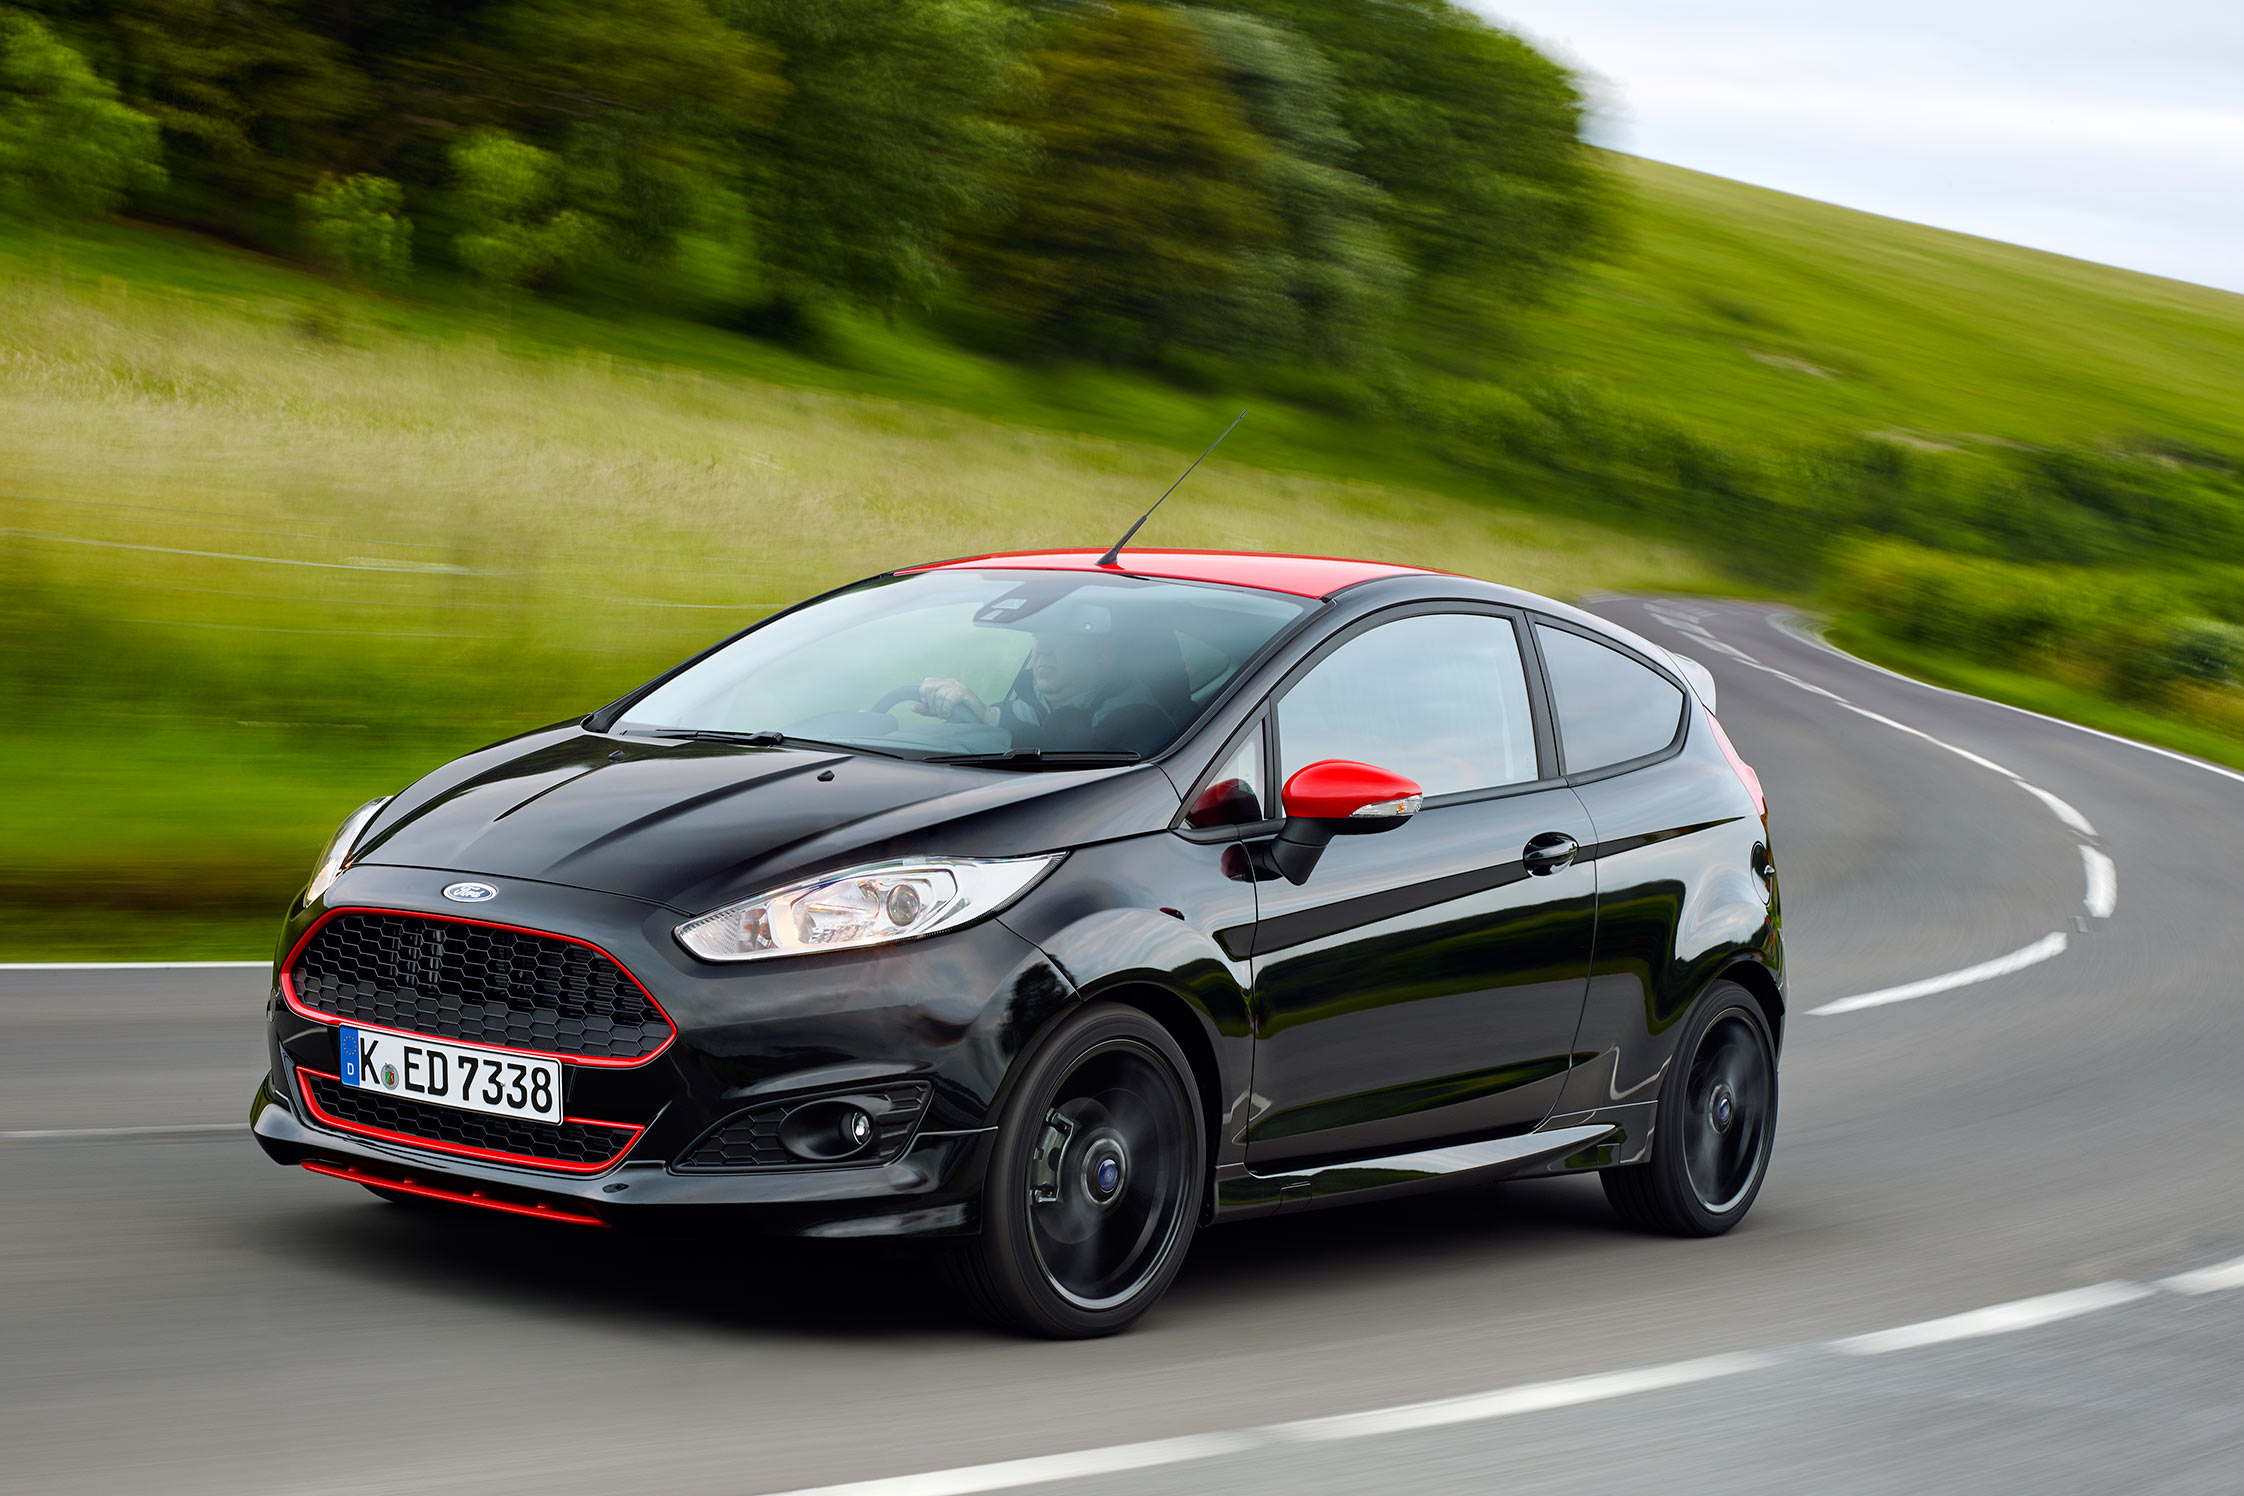 essai ford fiesta black edition motorlegend. Black Bedroom Furniture Sets. Home Design Ideas